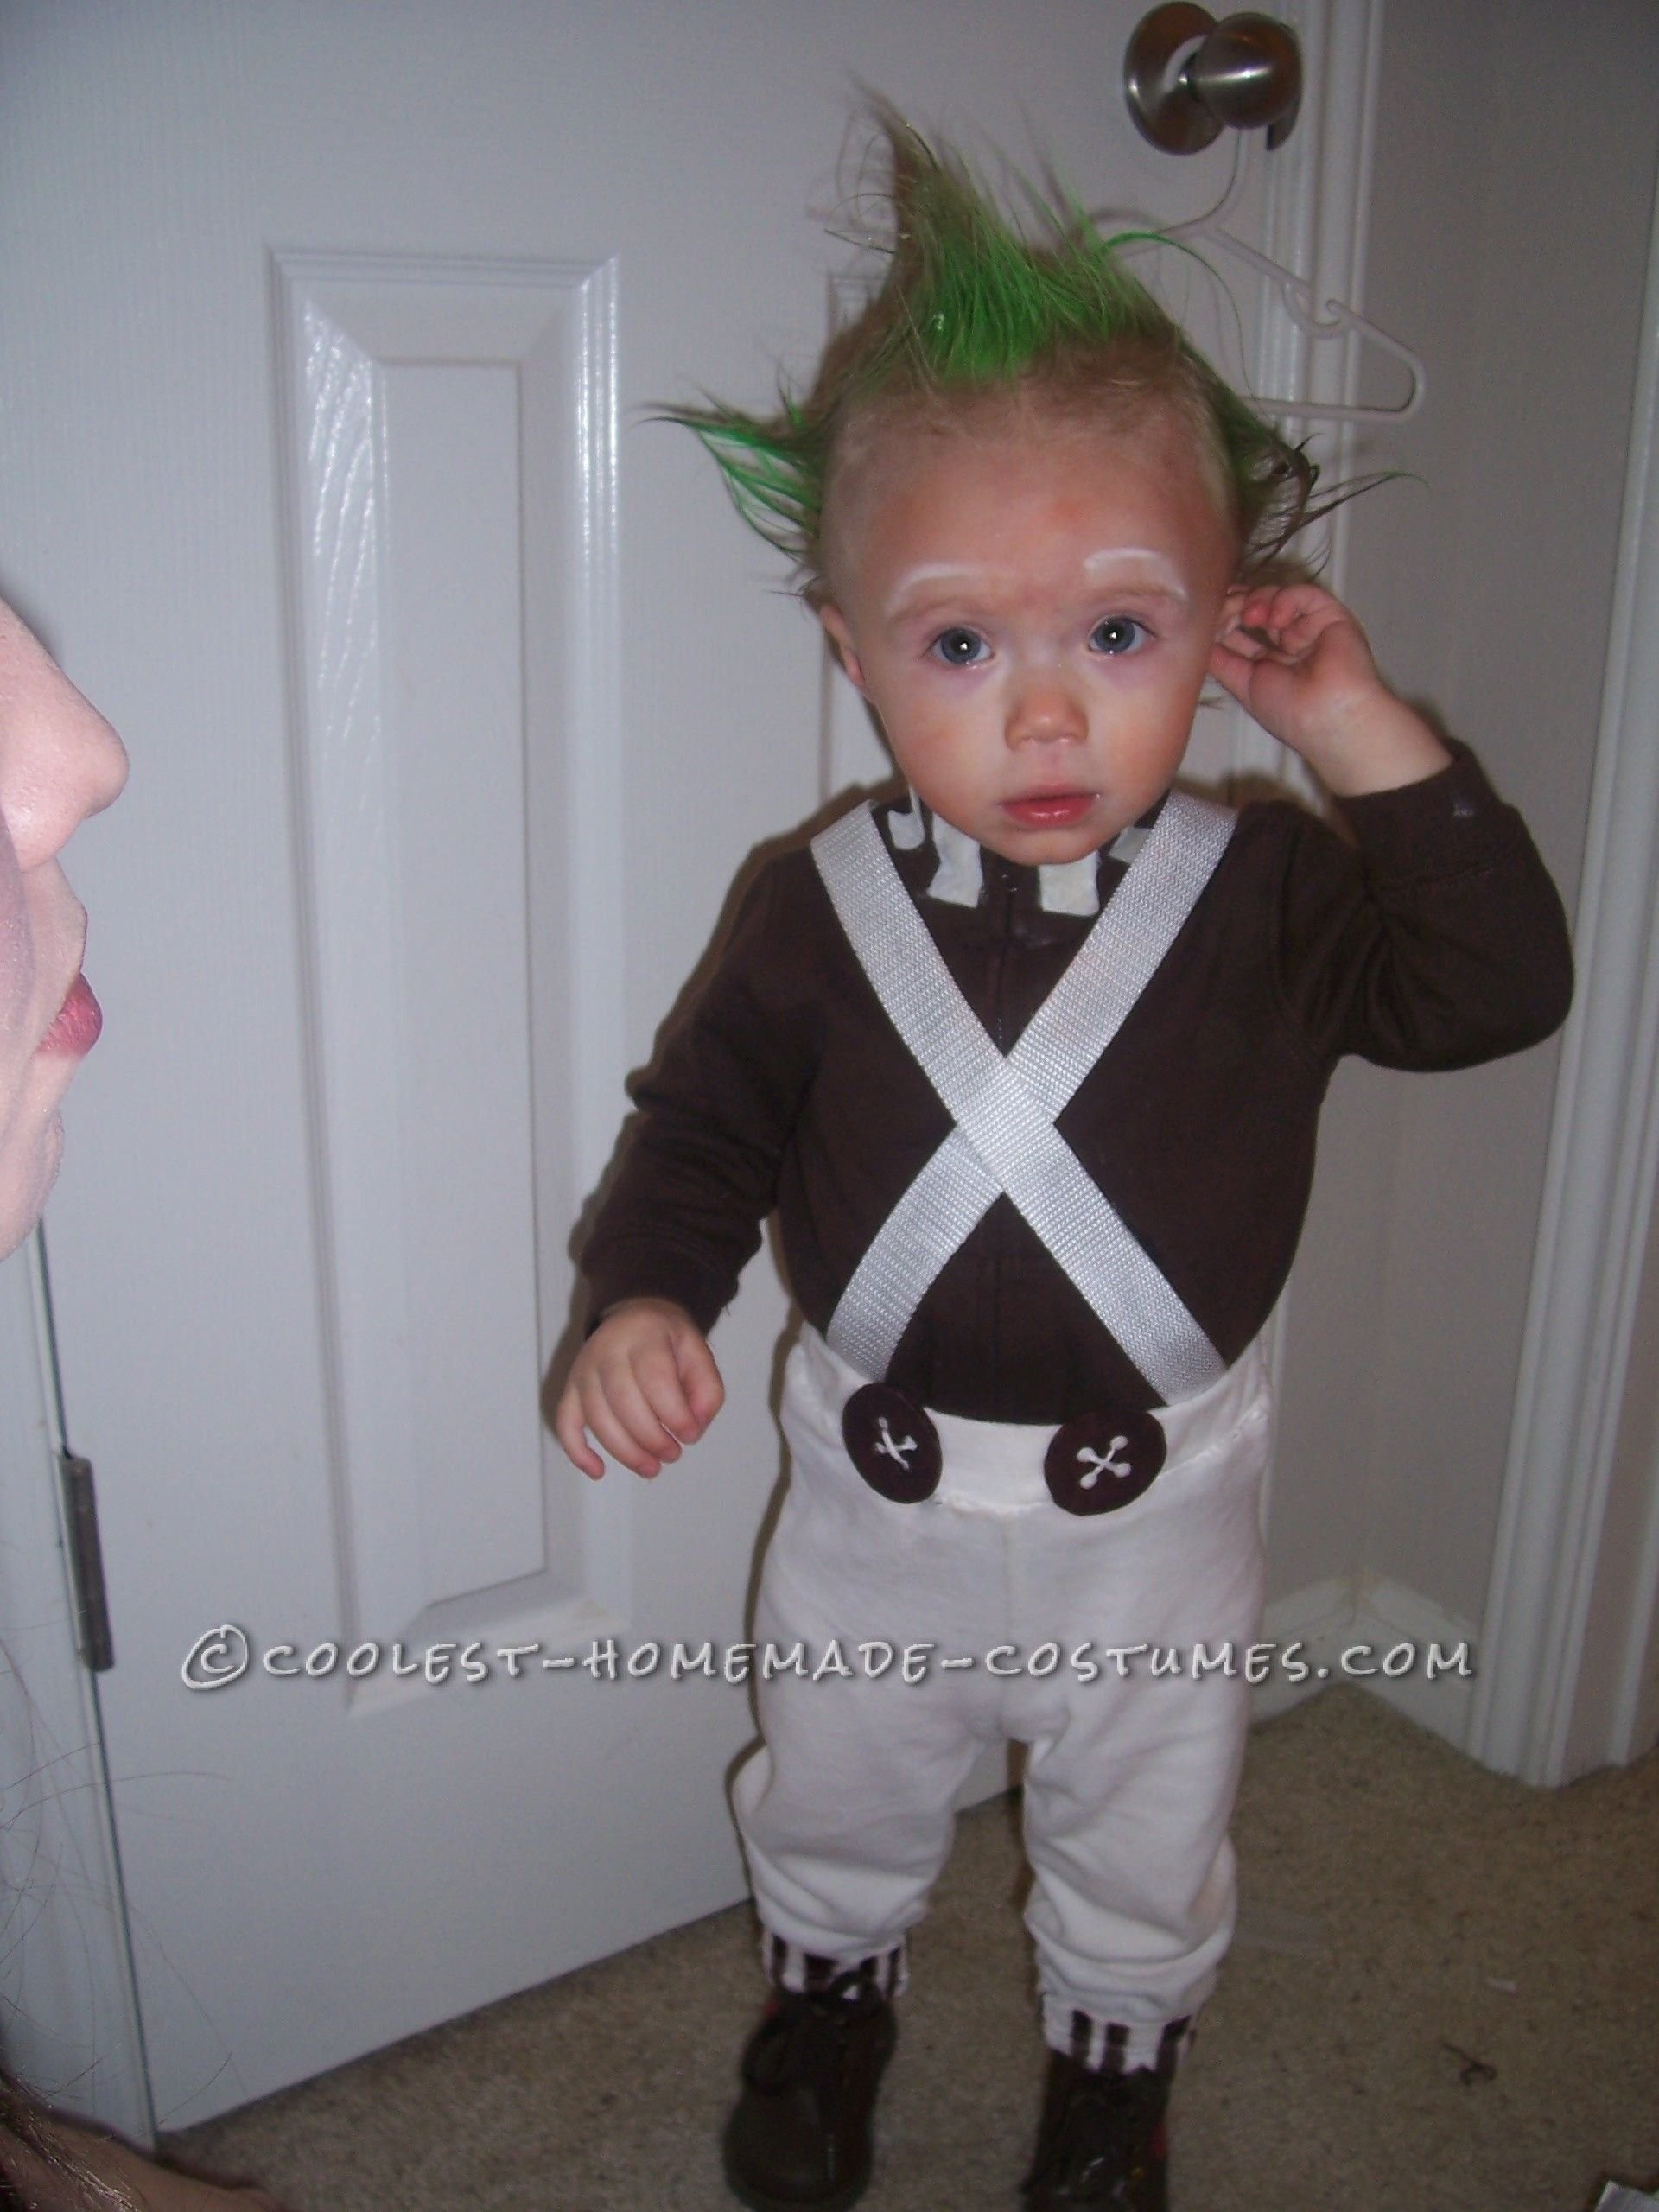 10 Amazing One Year Old Halloween Costume Ideas 1 year old easy oompa loompa costume oompa loompa costume